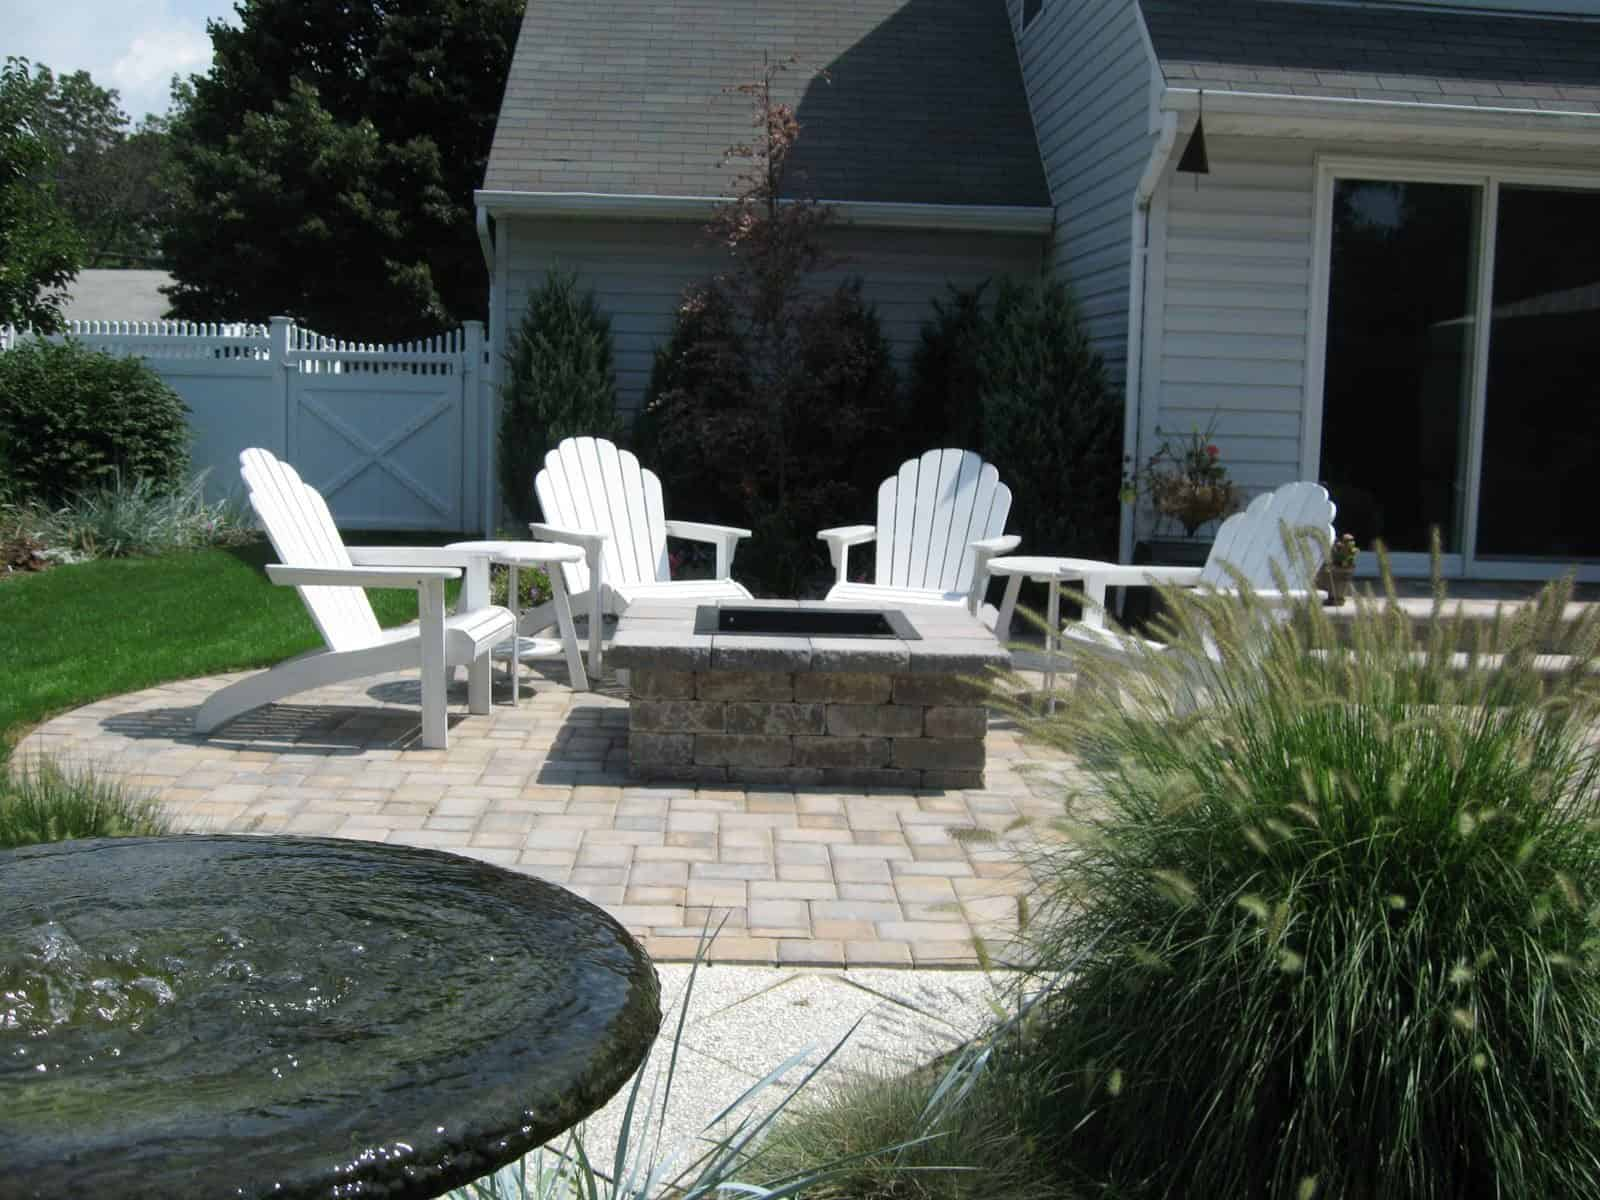 Cambridge - Old English - Color - Toffee/Ony​x - Square Fire Pit with grill grate and fire retardant insert - Islip Terrace, Long Island NY